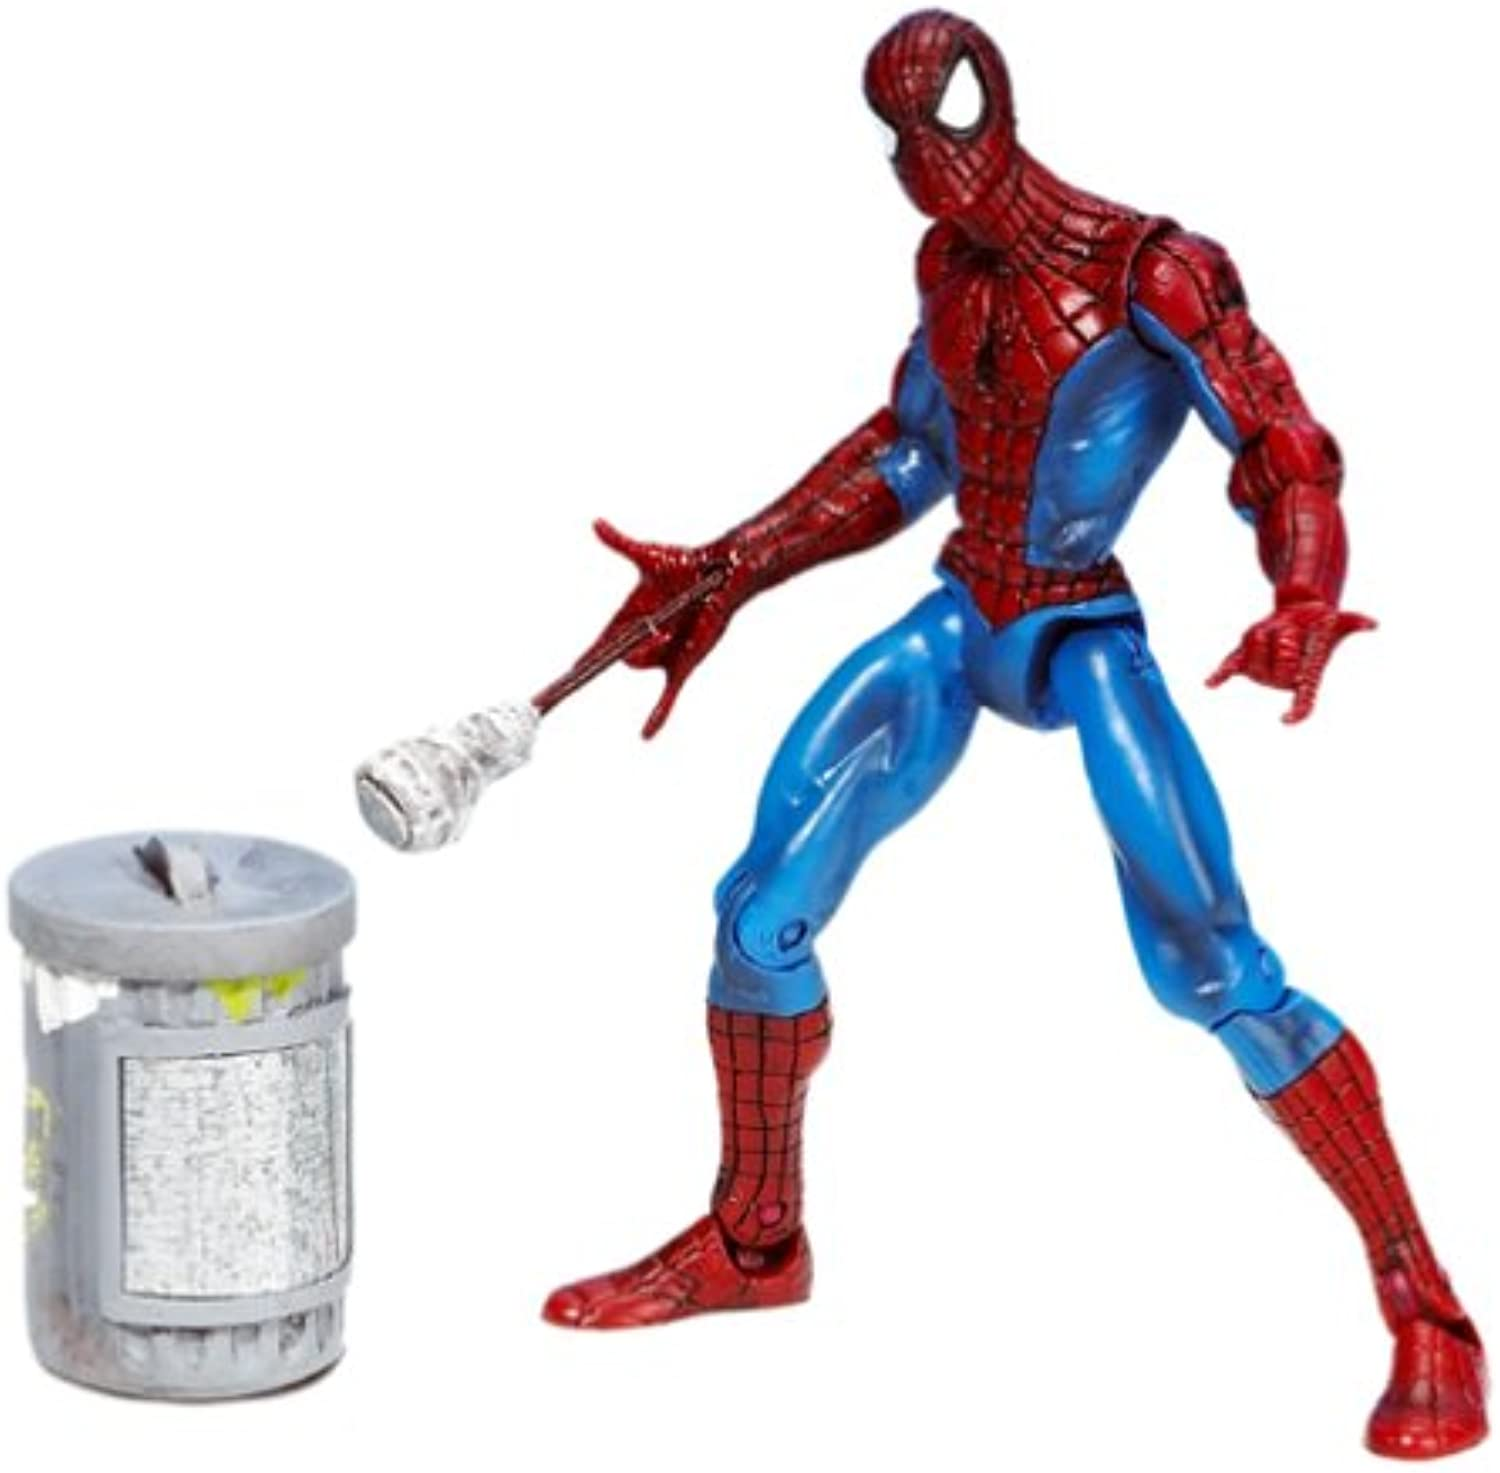 SpiderMan With Magnetic Shoot 'n Grab Action Spider Man Figure